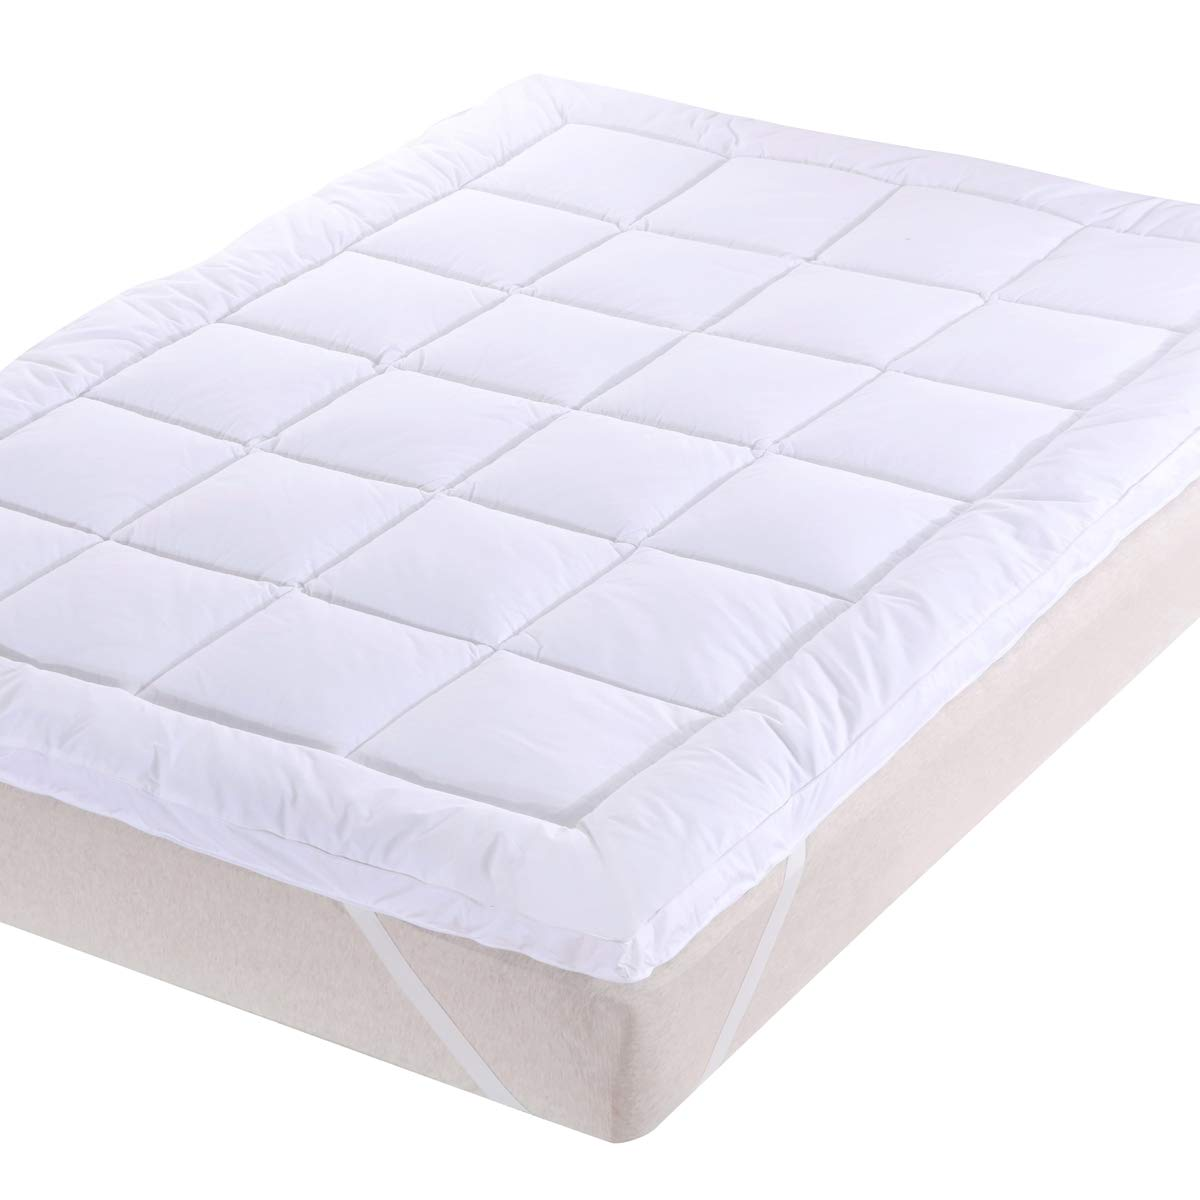 Royal Bedding 3-Inch Plush Microfiber 39-Inch Wide x 80-Inch Long, Twin Extra Long-XL Mattress Topper with Down Alternative Fill, White